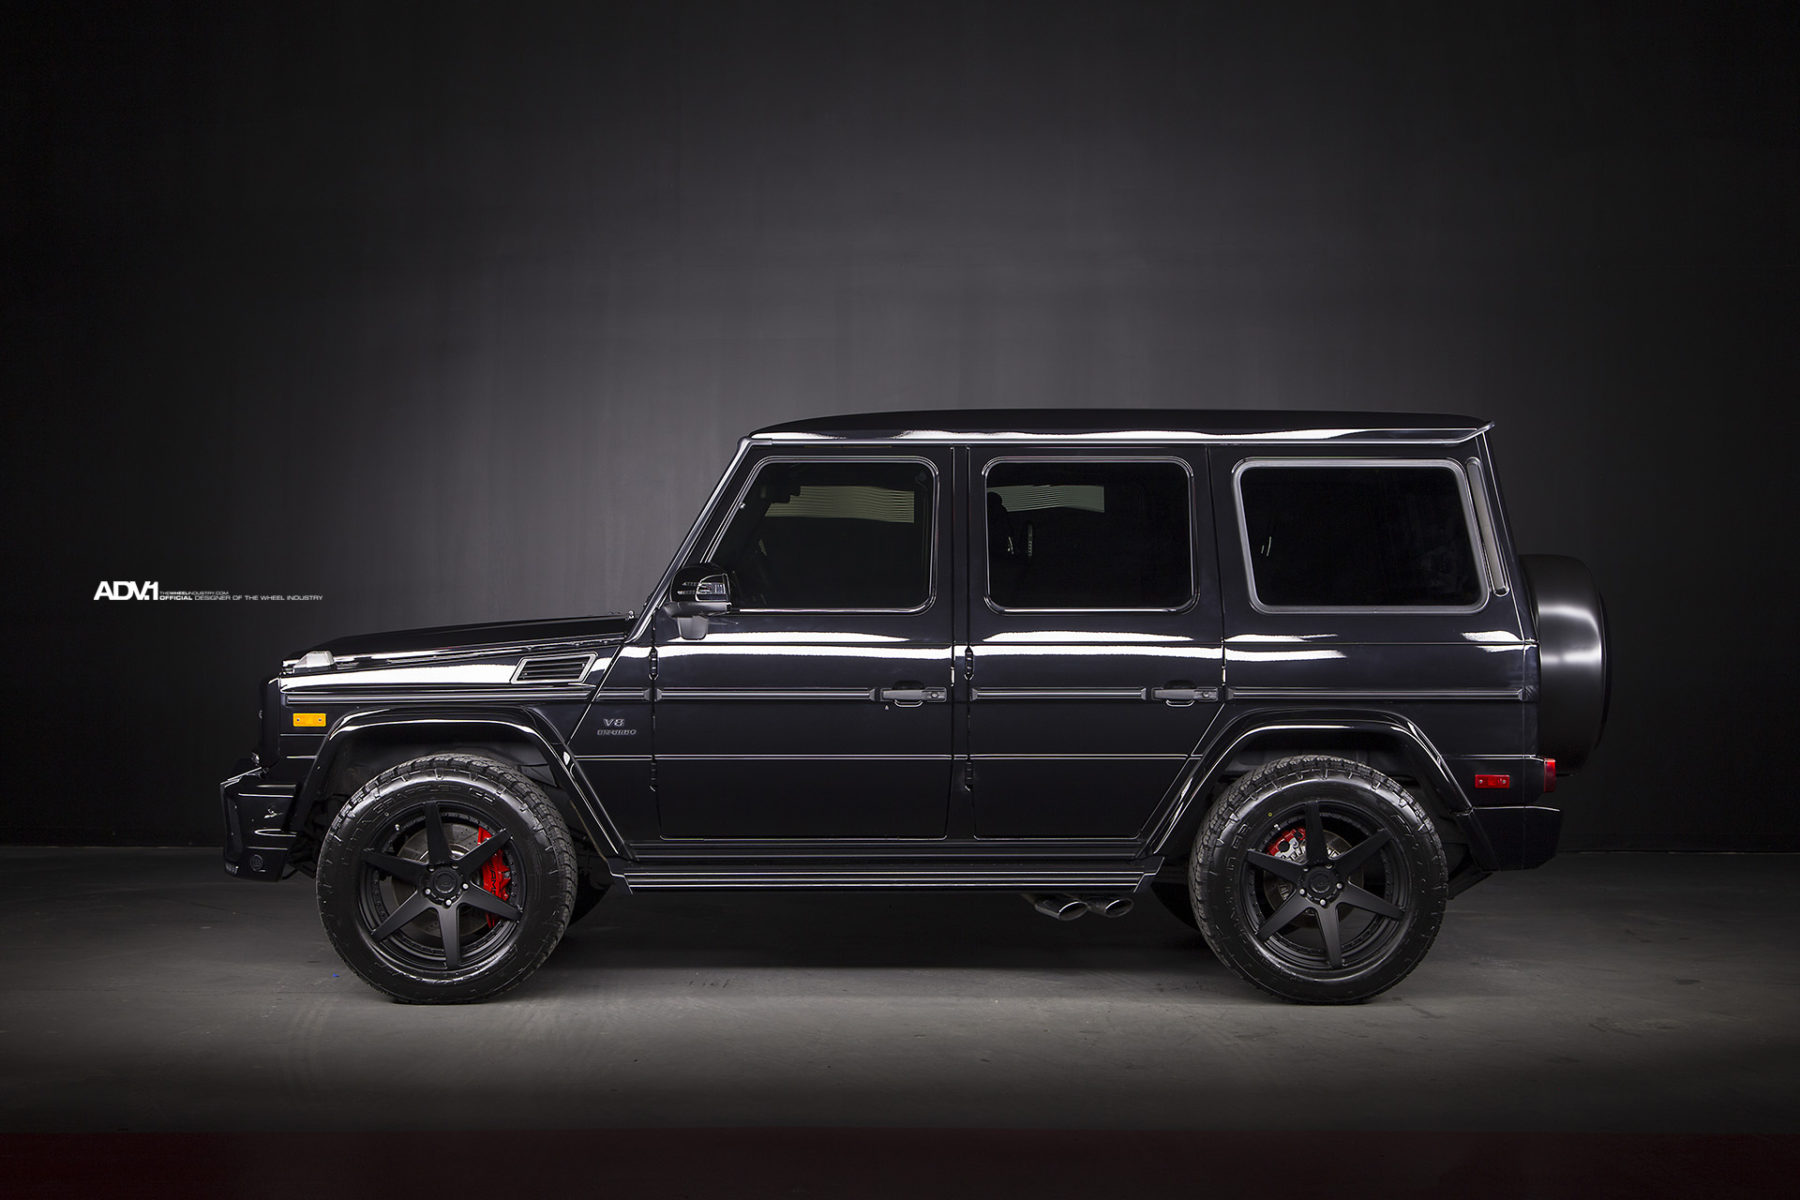 Brabus mercedes benz g63 amg gets refined with adv 1 for Mercedes benz g wagon black matte